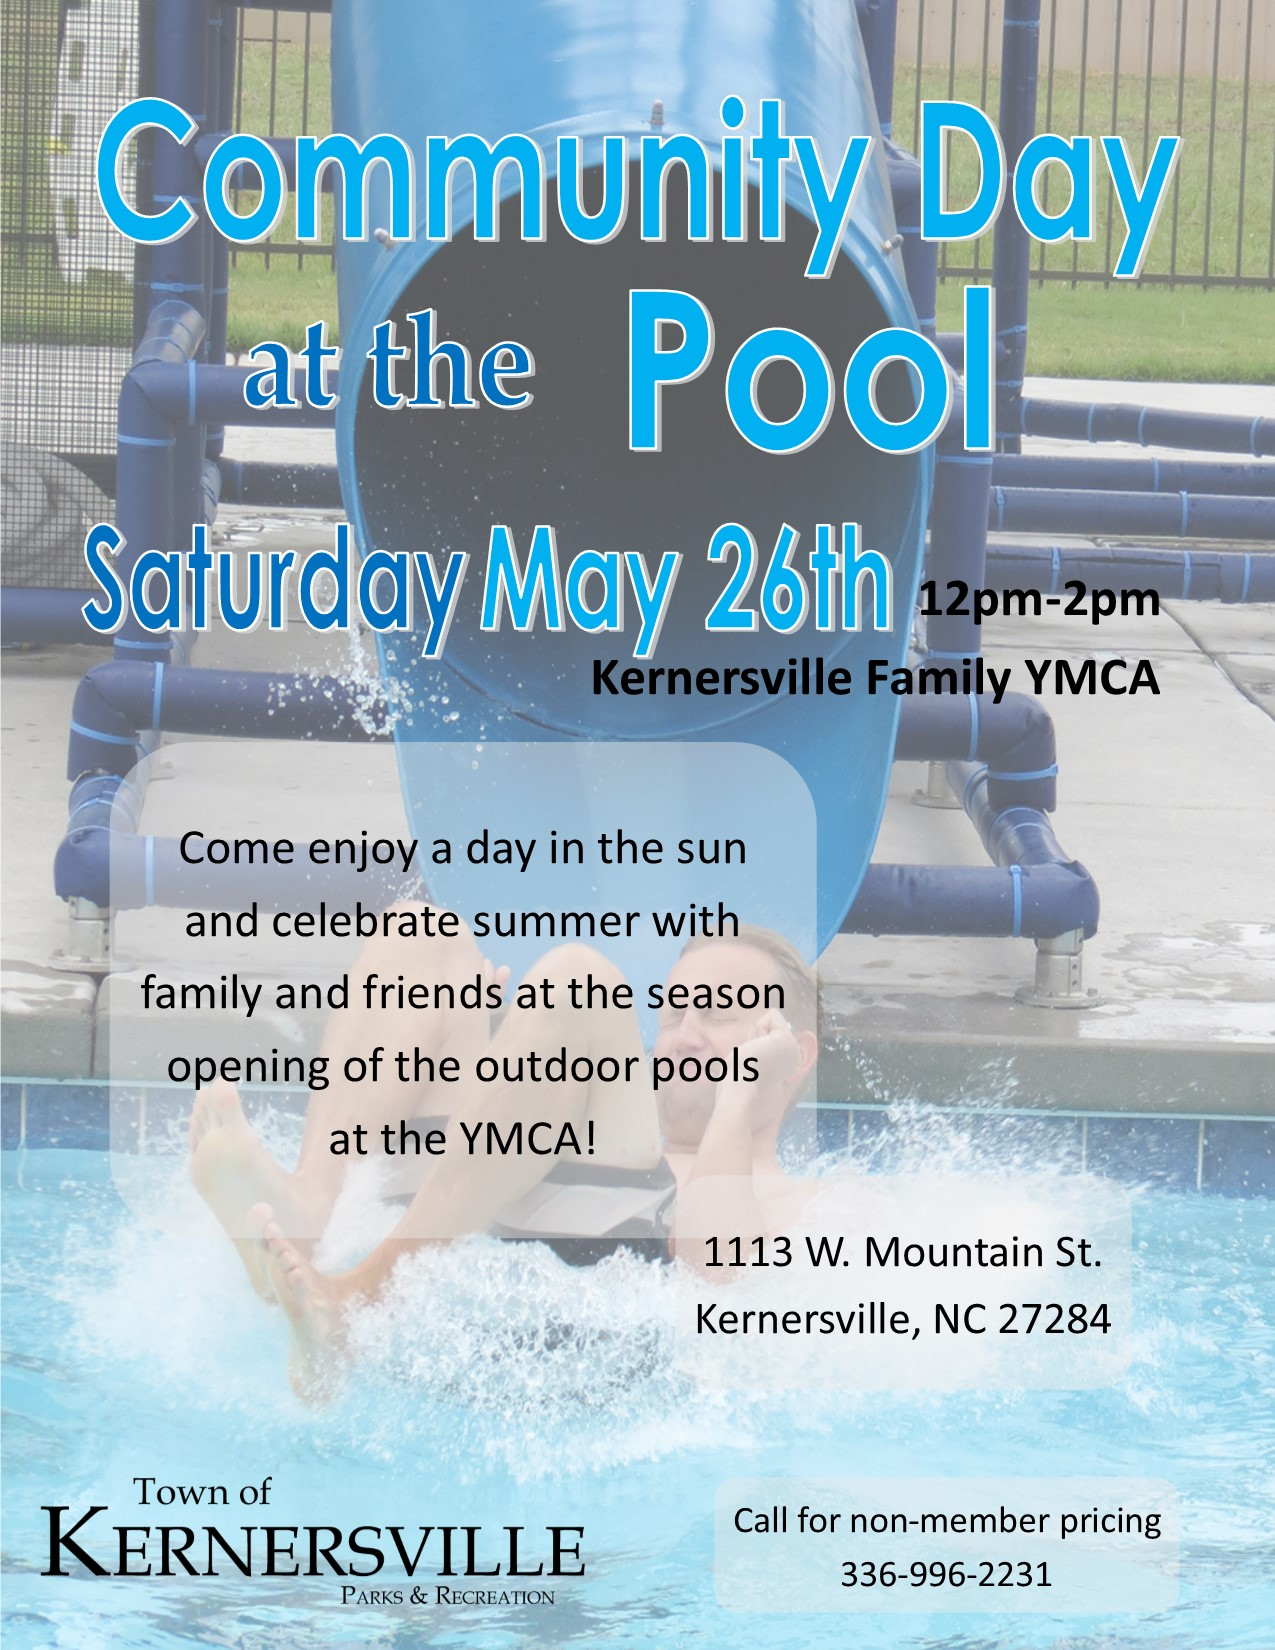 Kernersville Community Day at the Pool